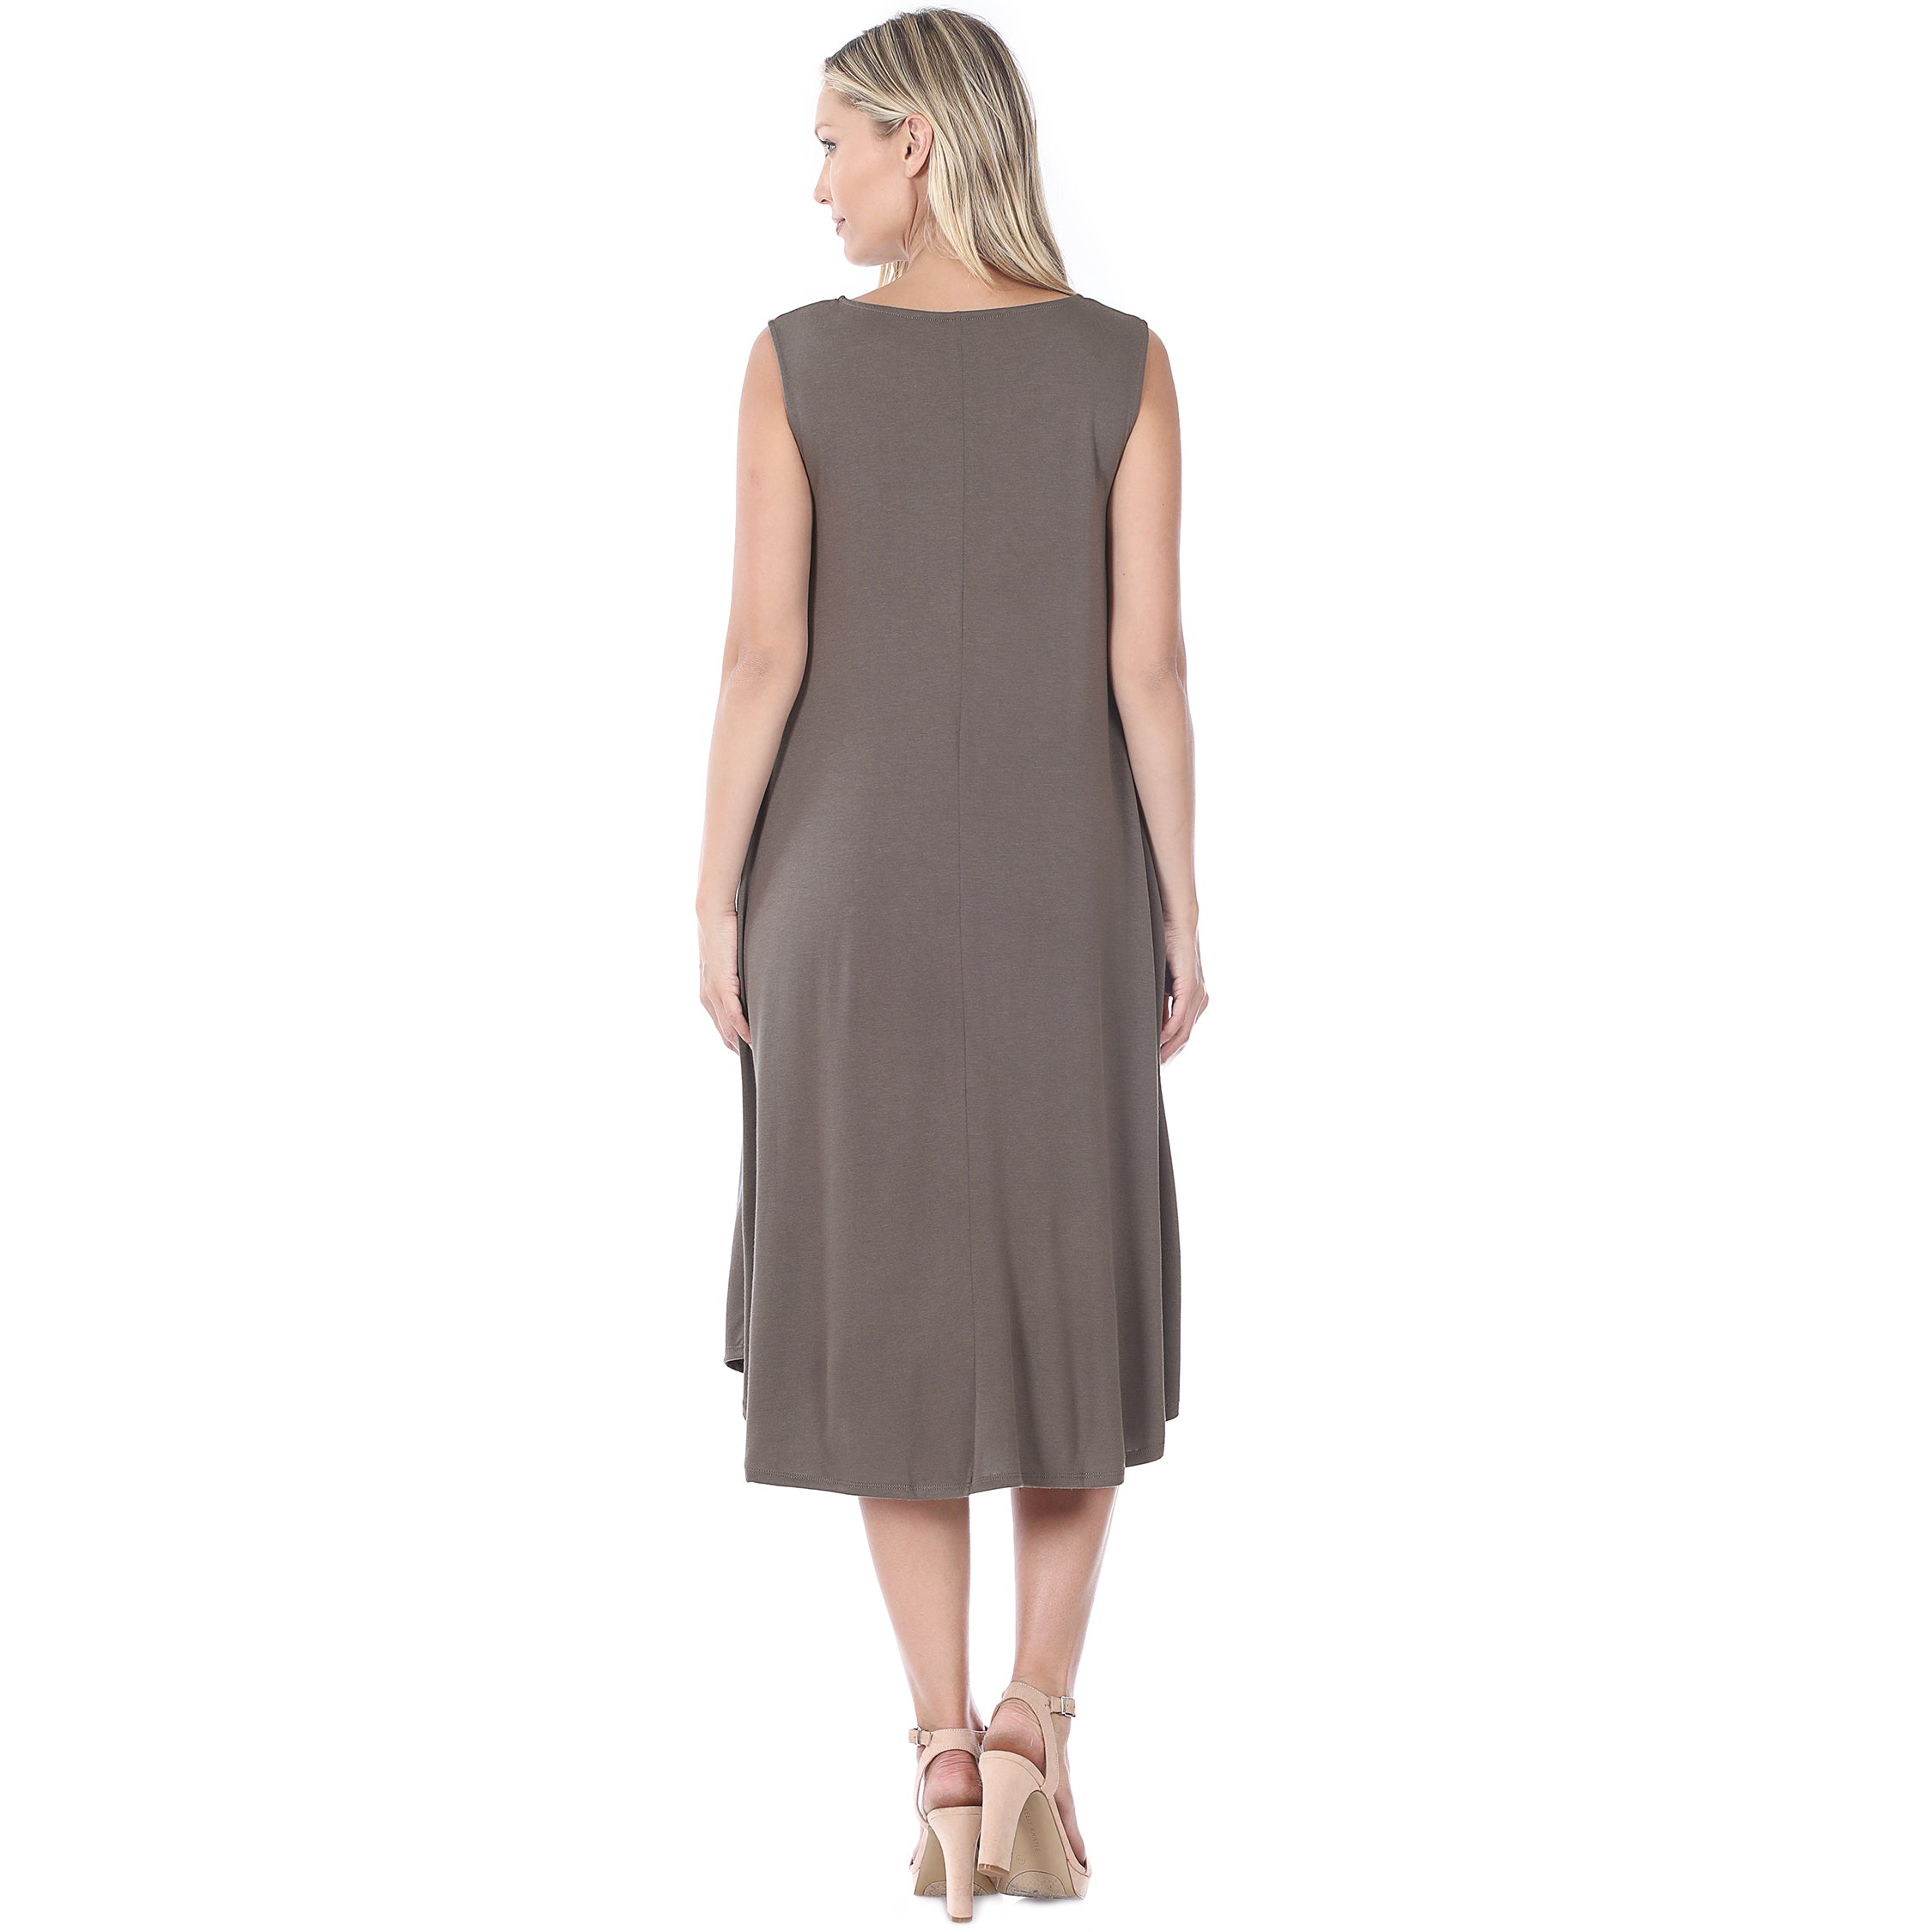 PURSUIT OF HAPPINESS Grey Midi length Sleeveless Dress